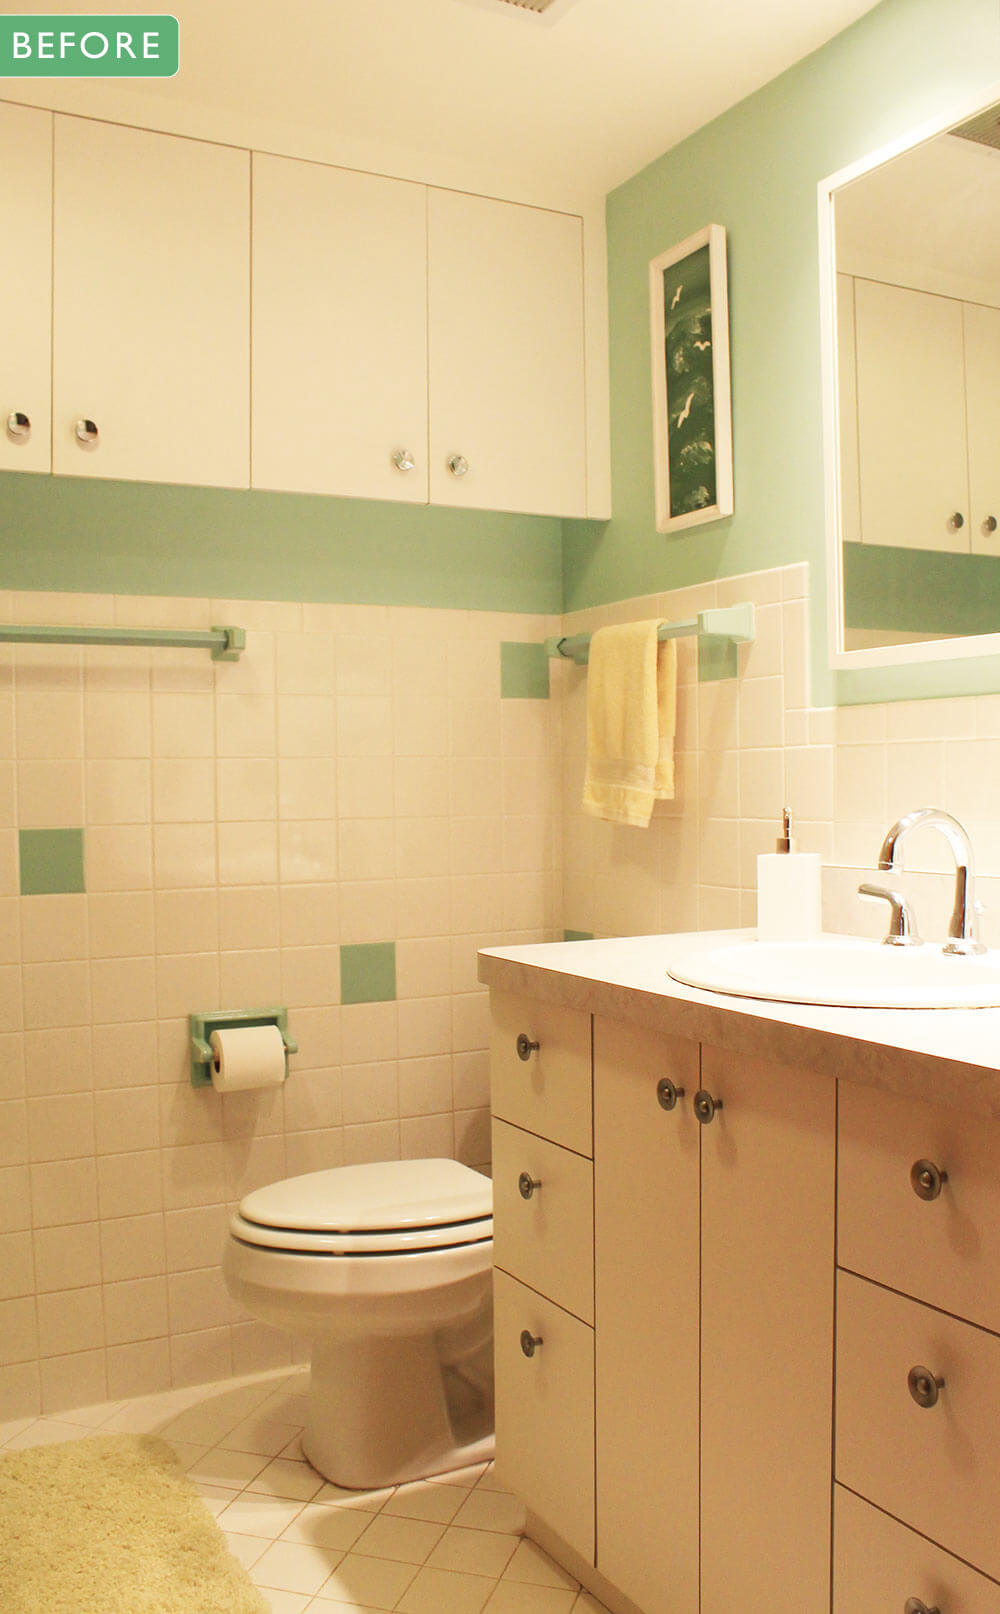 Kate 39 S 1960s Green Bathroom Remodel 39 Lite 39 Before And